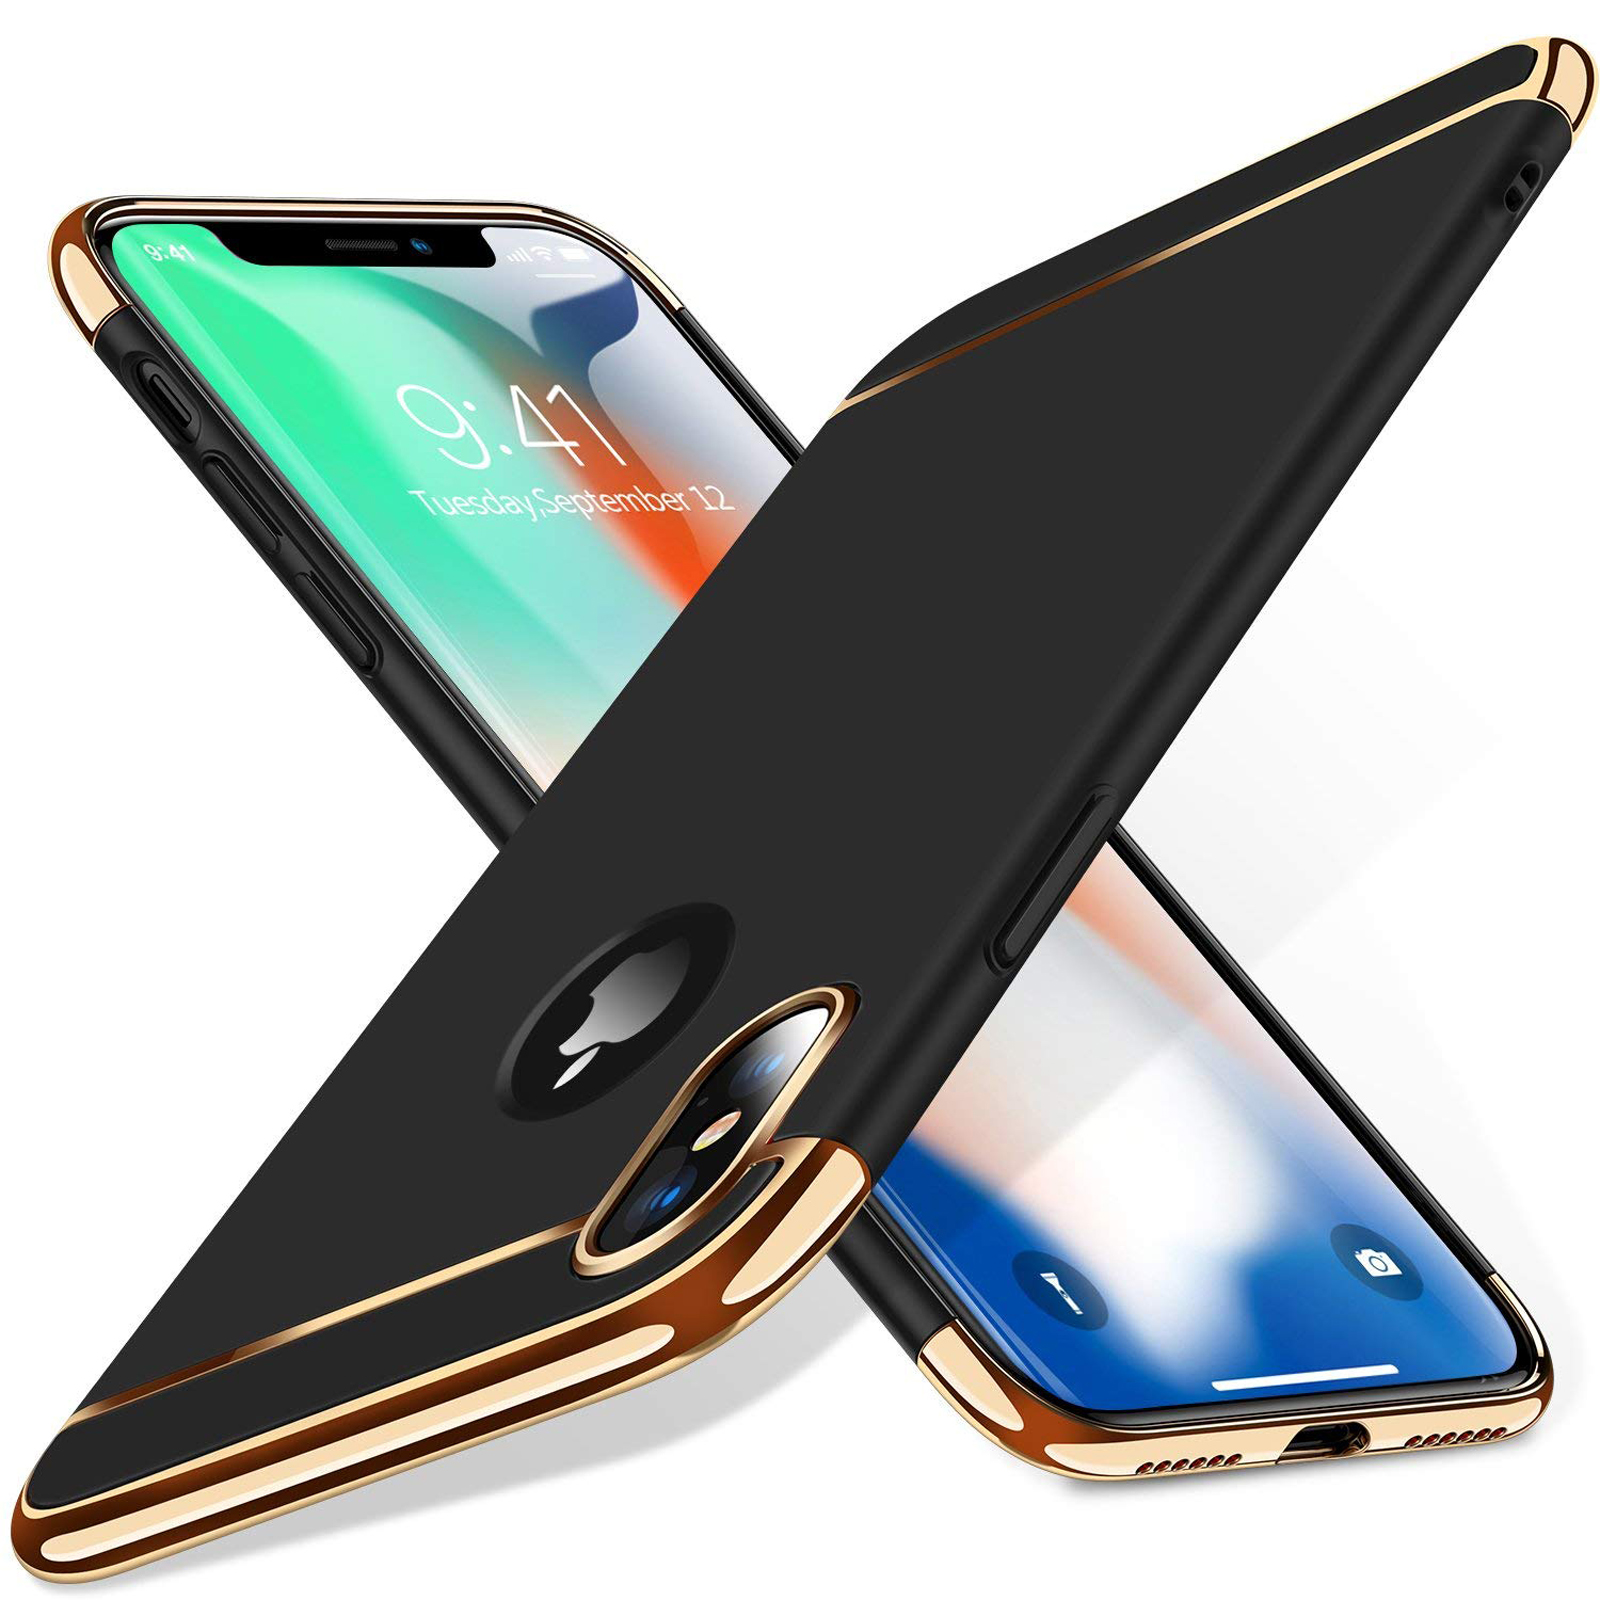 Luxury-Matte-Case-Tempered-Glass-Cover-For-Apple-iPhone-X-XS-XR-Max-10-8-7-6s-6 thumbnail 37